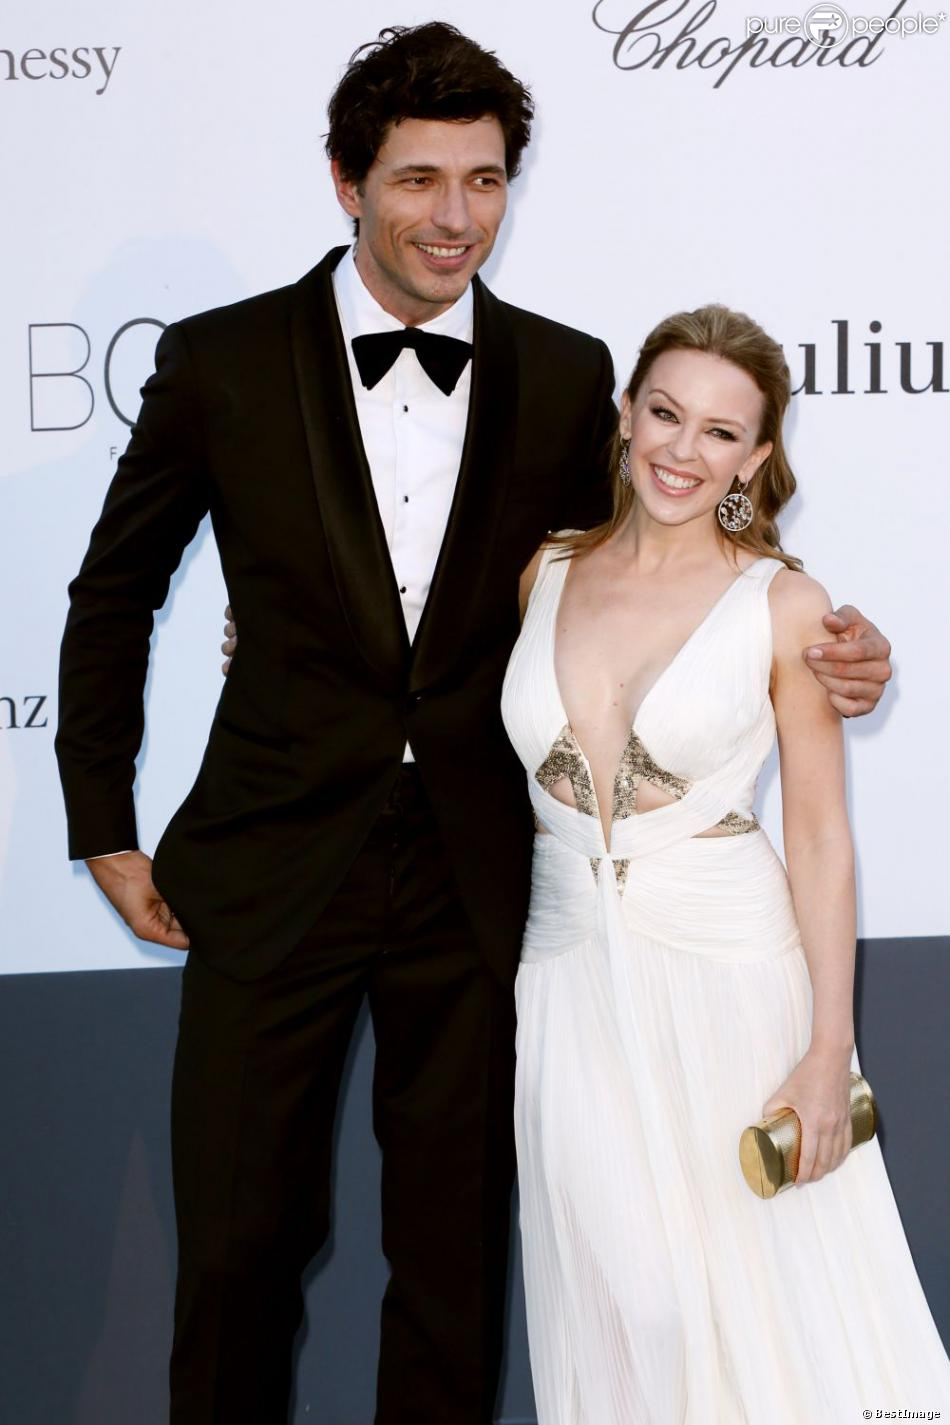 Kylie Minogue et son petit ami Andres Velencoso au photocall de la soirée AmfAR's 20th Cinema Against AIDS à l'Eden Roc au Cap d'Antibes lors du 66e Festival du film de Cannes, le 23 mai 2013.